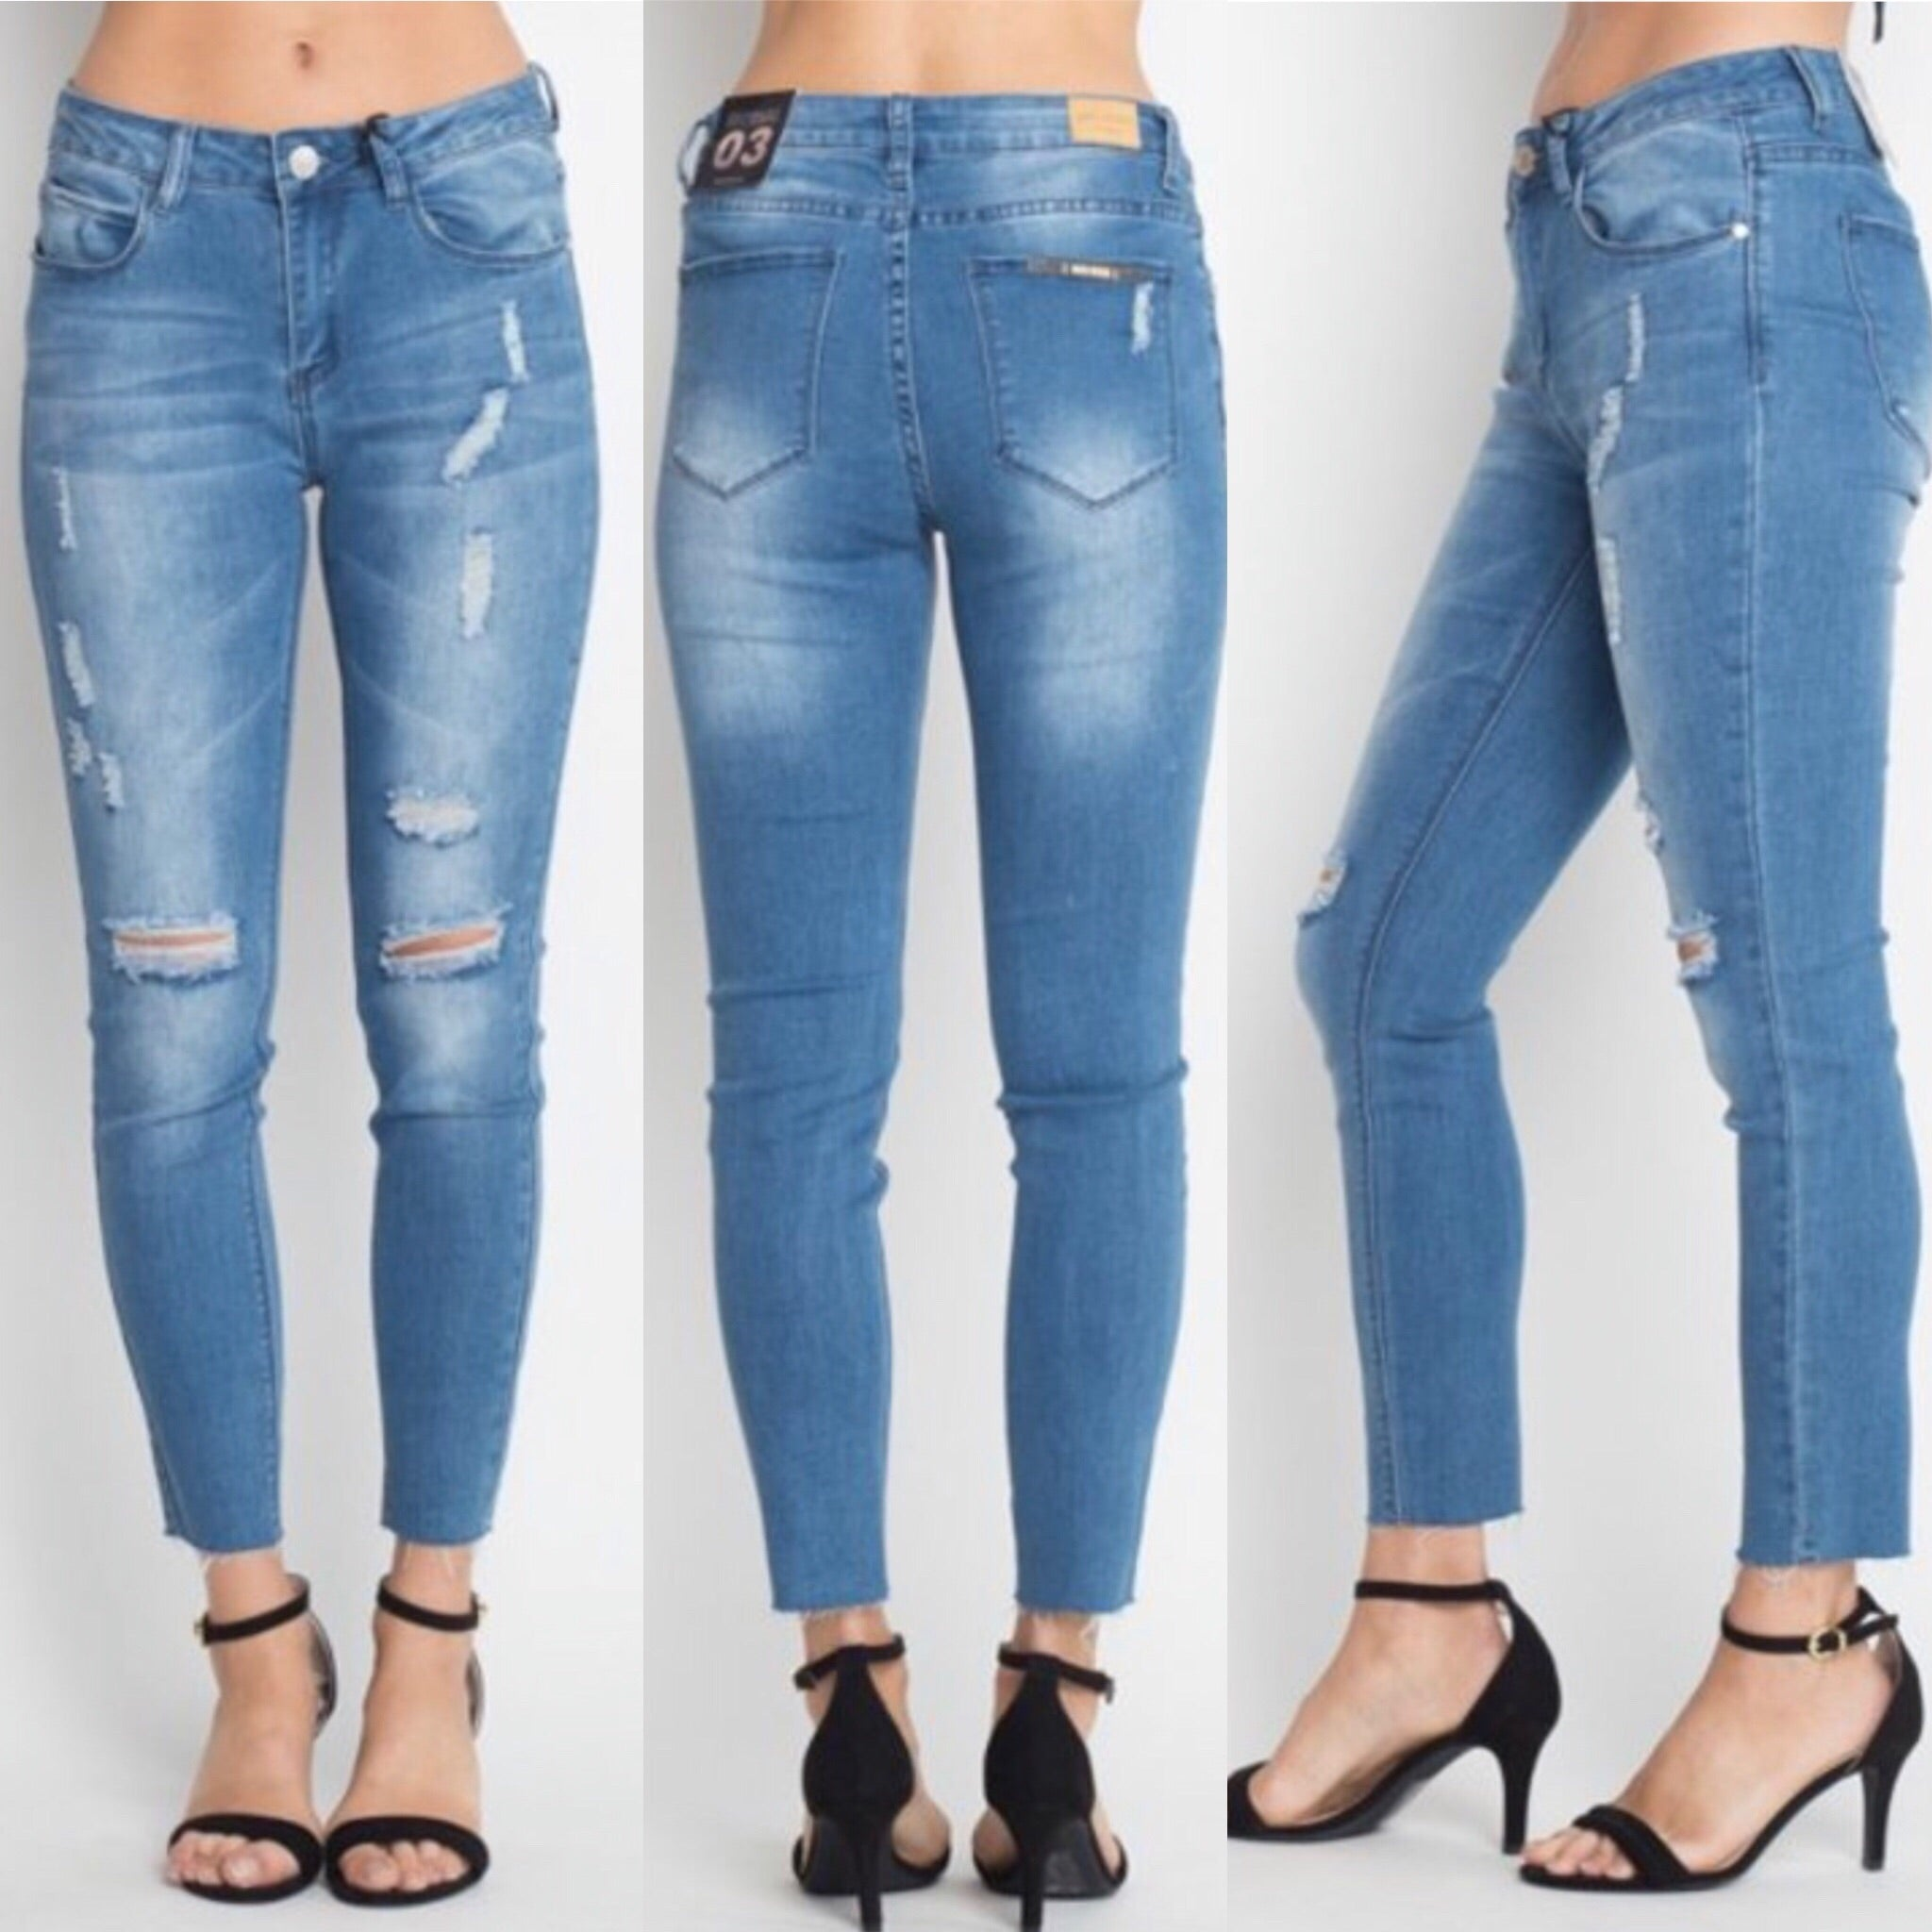 Avery Skinny Crop Jeans - Med. Denim